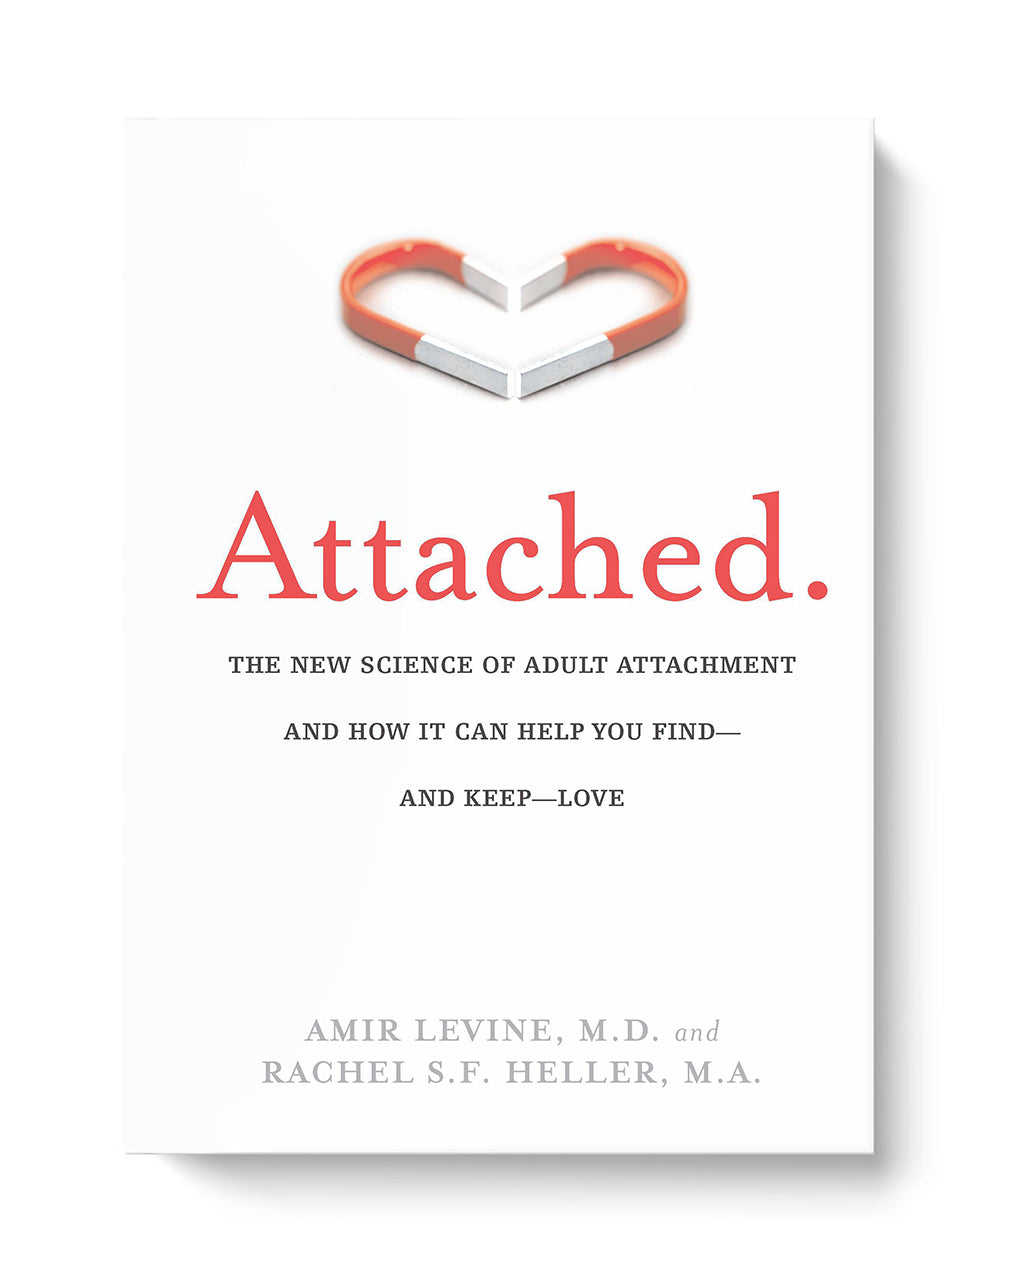 'Attached' by Amir Levine, M.D. and Rachel Heller, M.A.